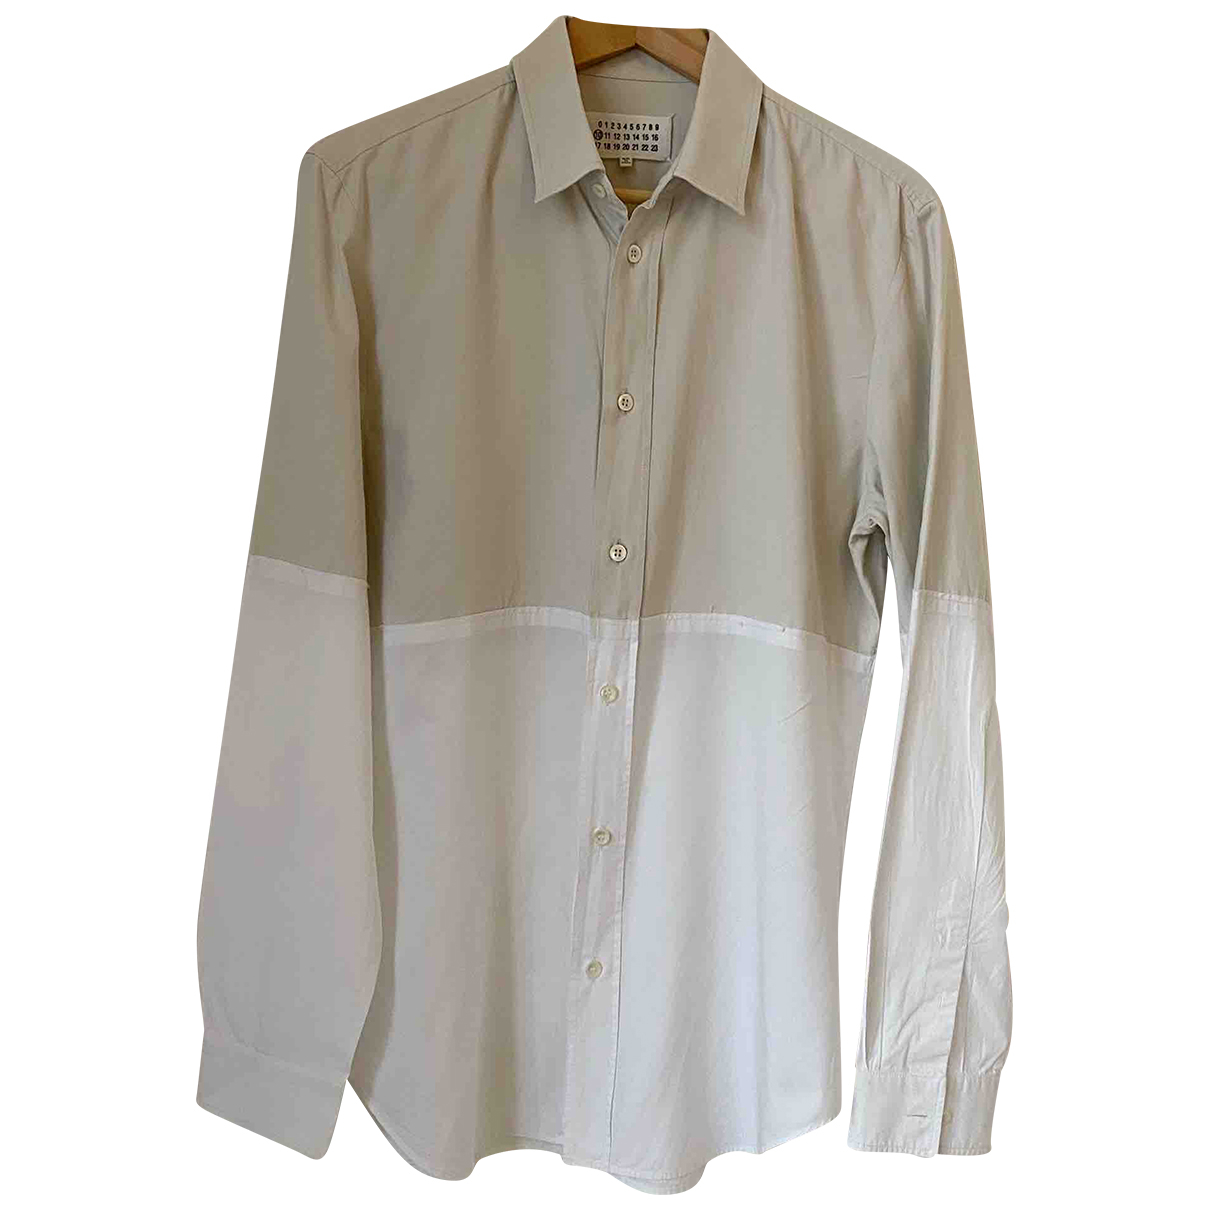 Maison Martin Margiela \N Beige Cotton Shirts for Men M International